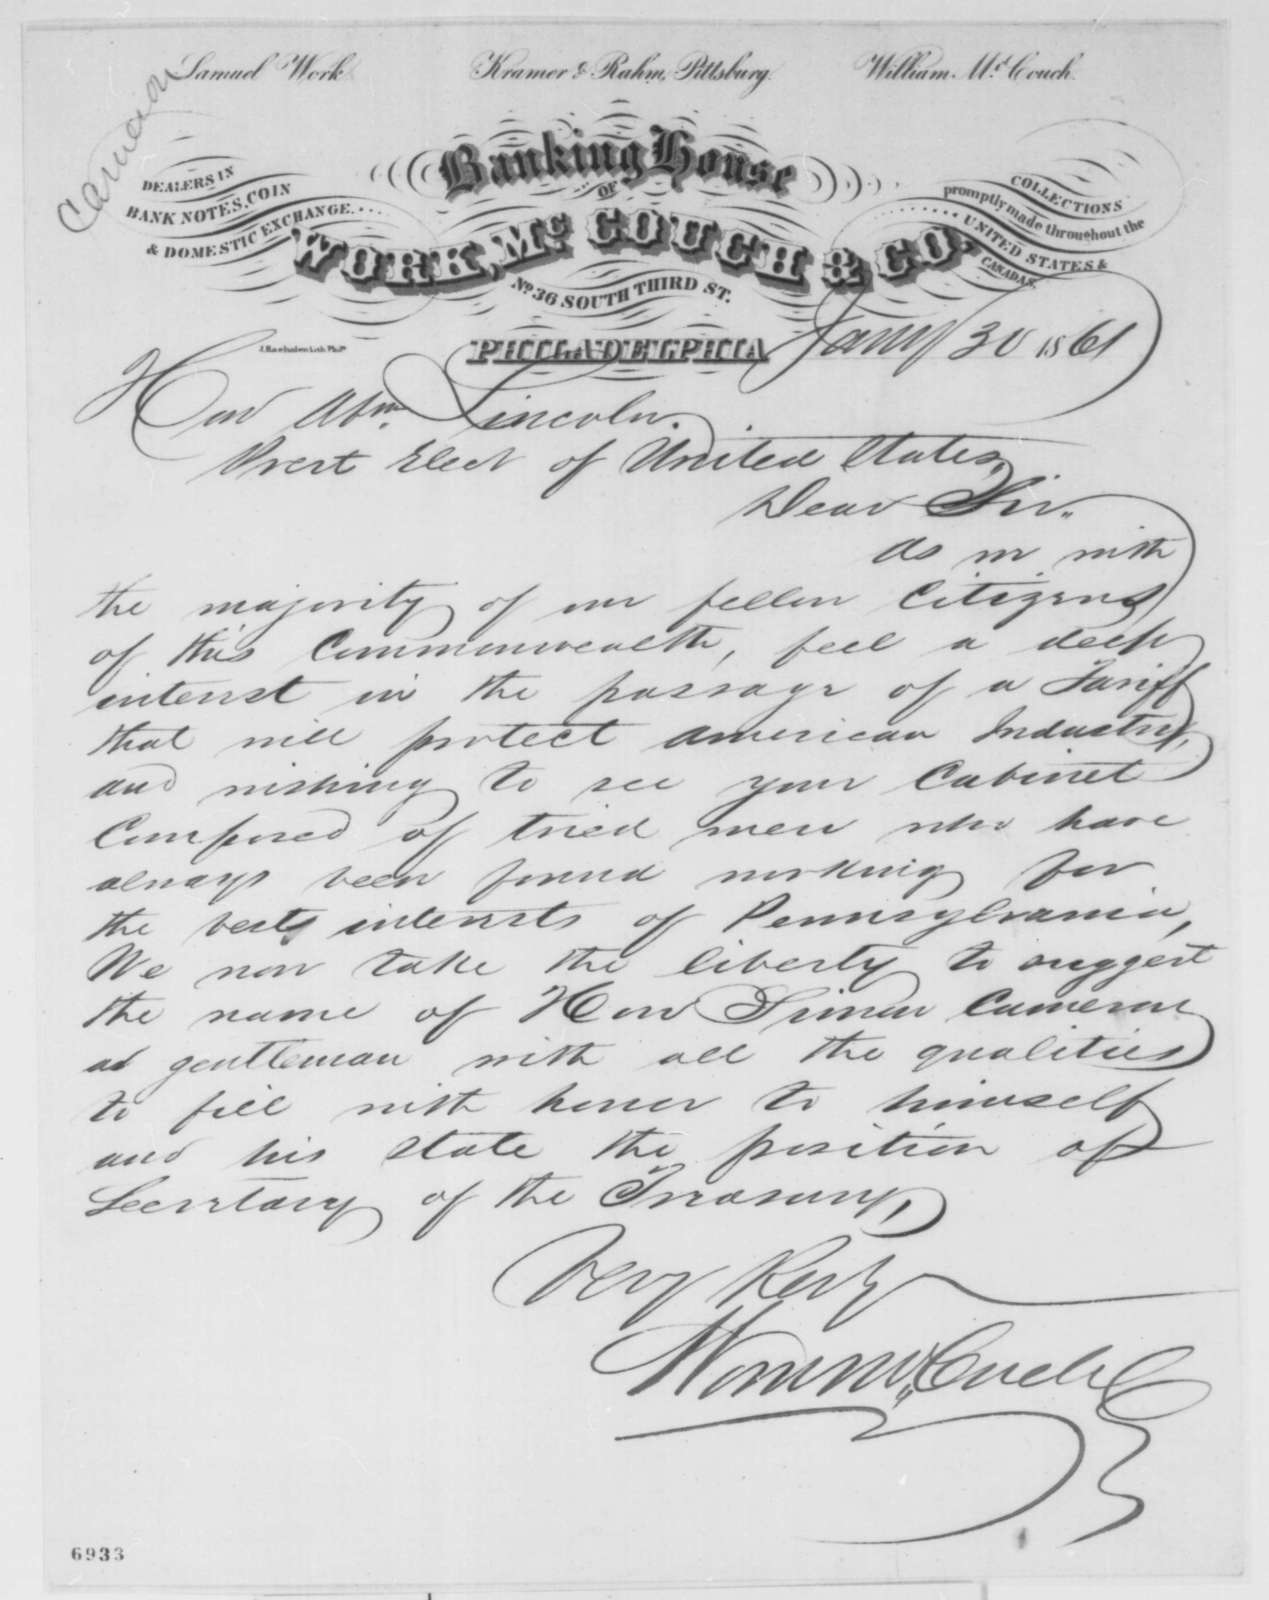 Work, McCouch & Co. to Abraham Lincoln, Wednesday, January 30, 1861  (Recommends Cameron)